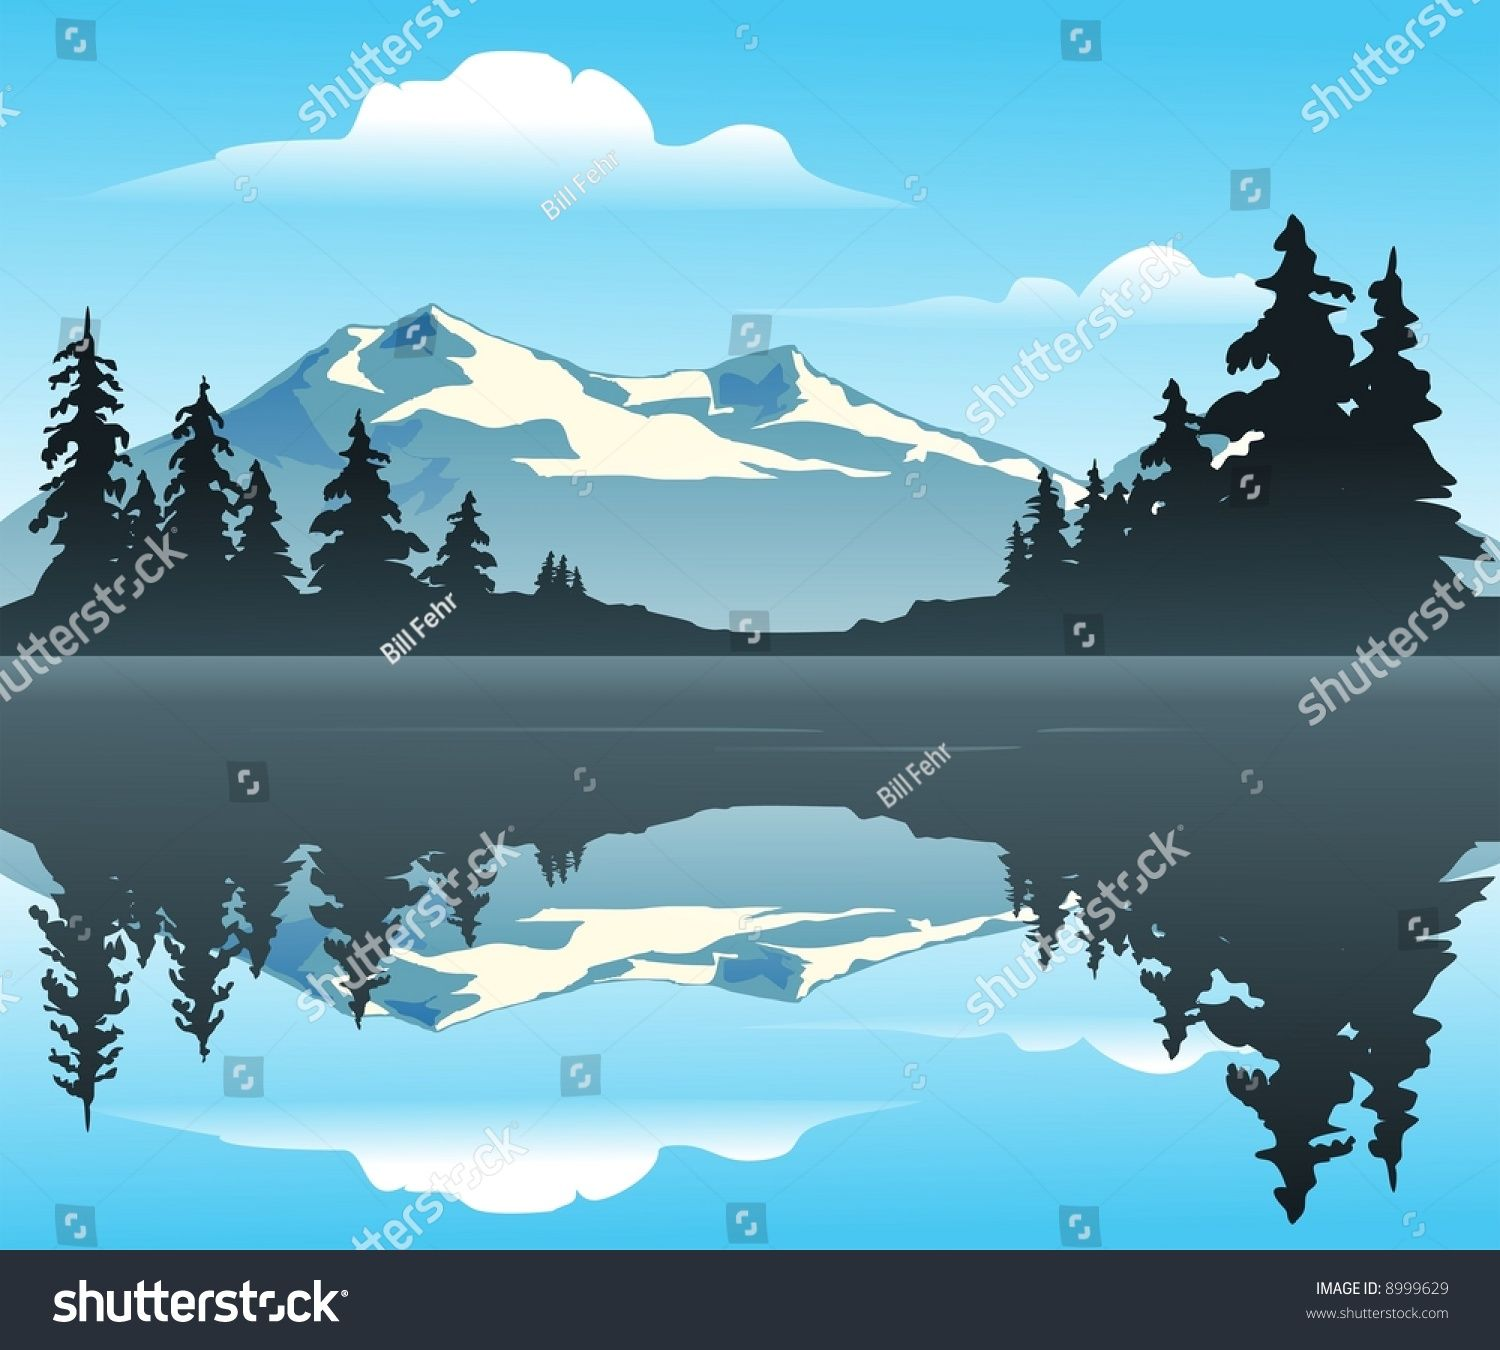 Yellowstone mountain clipart silhouette image Lake Mountain Silhouette Clip Art | Mountain Lake Outdoor Scene ... image